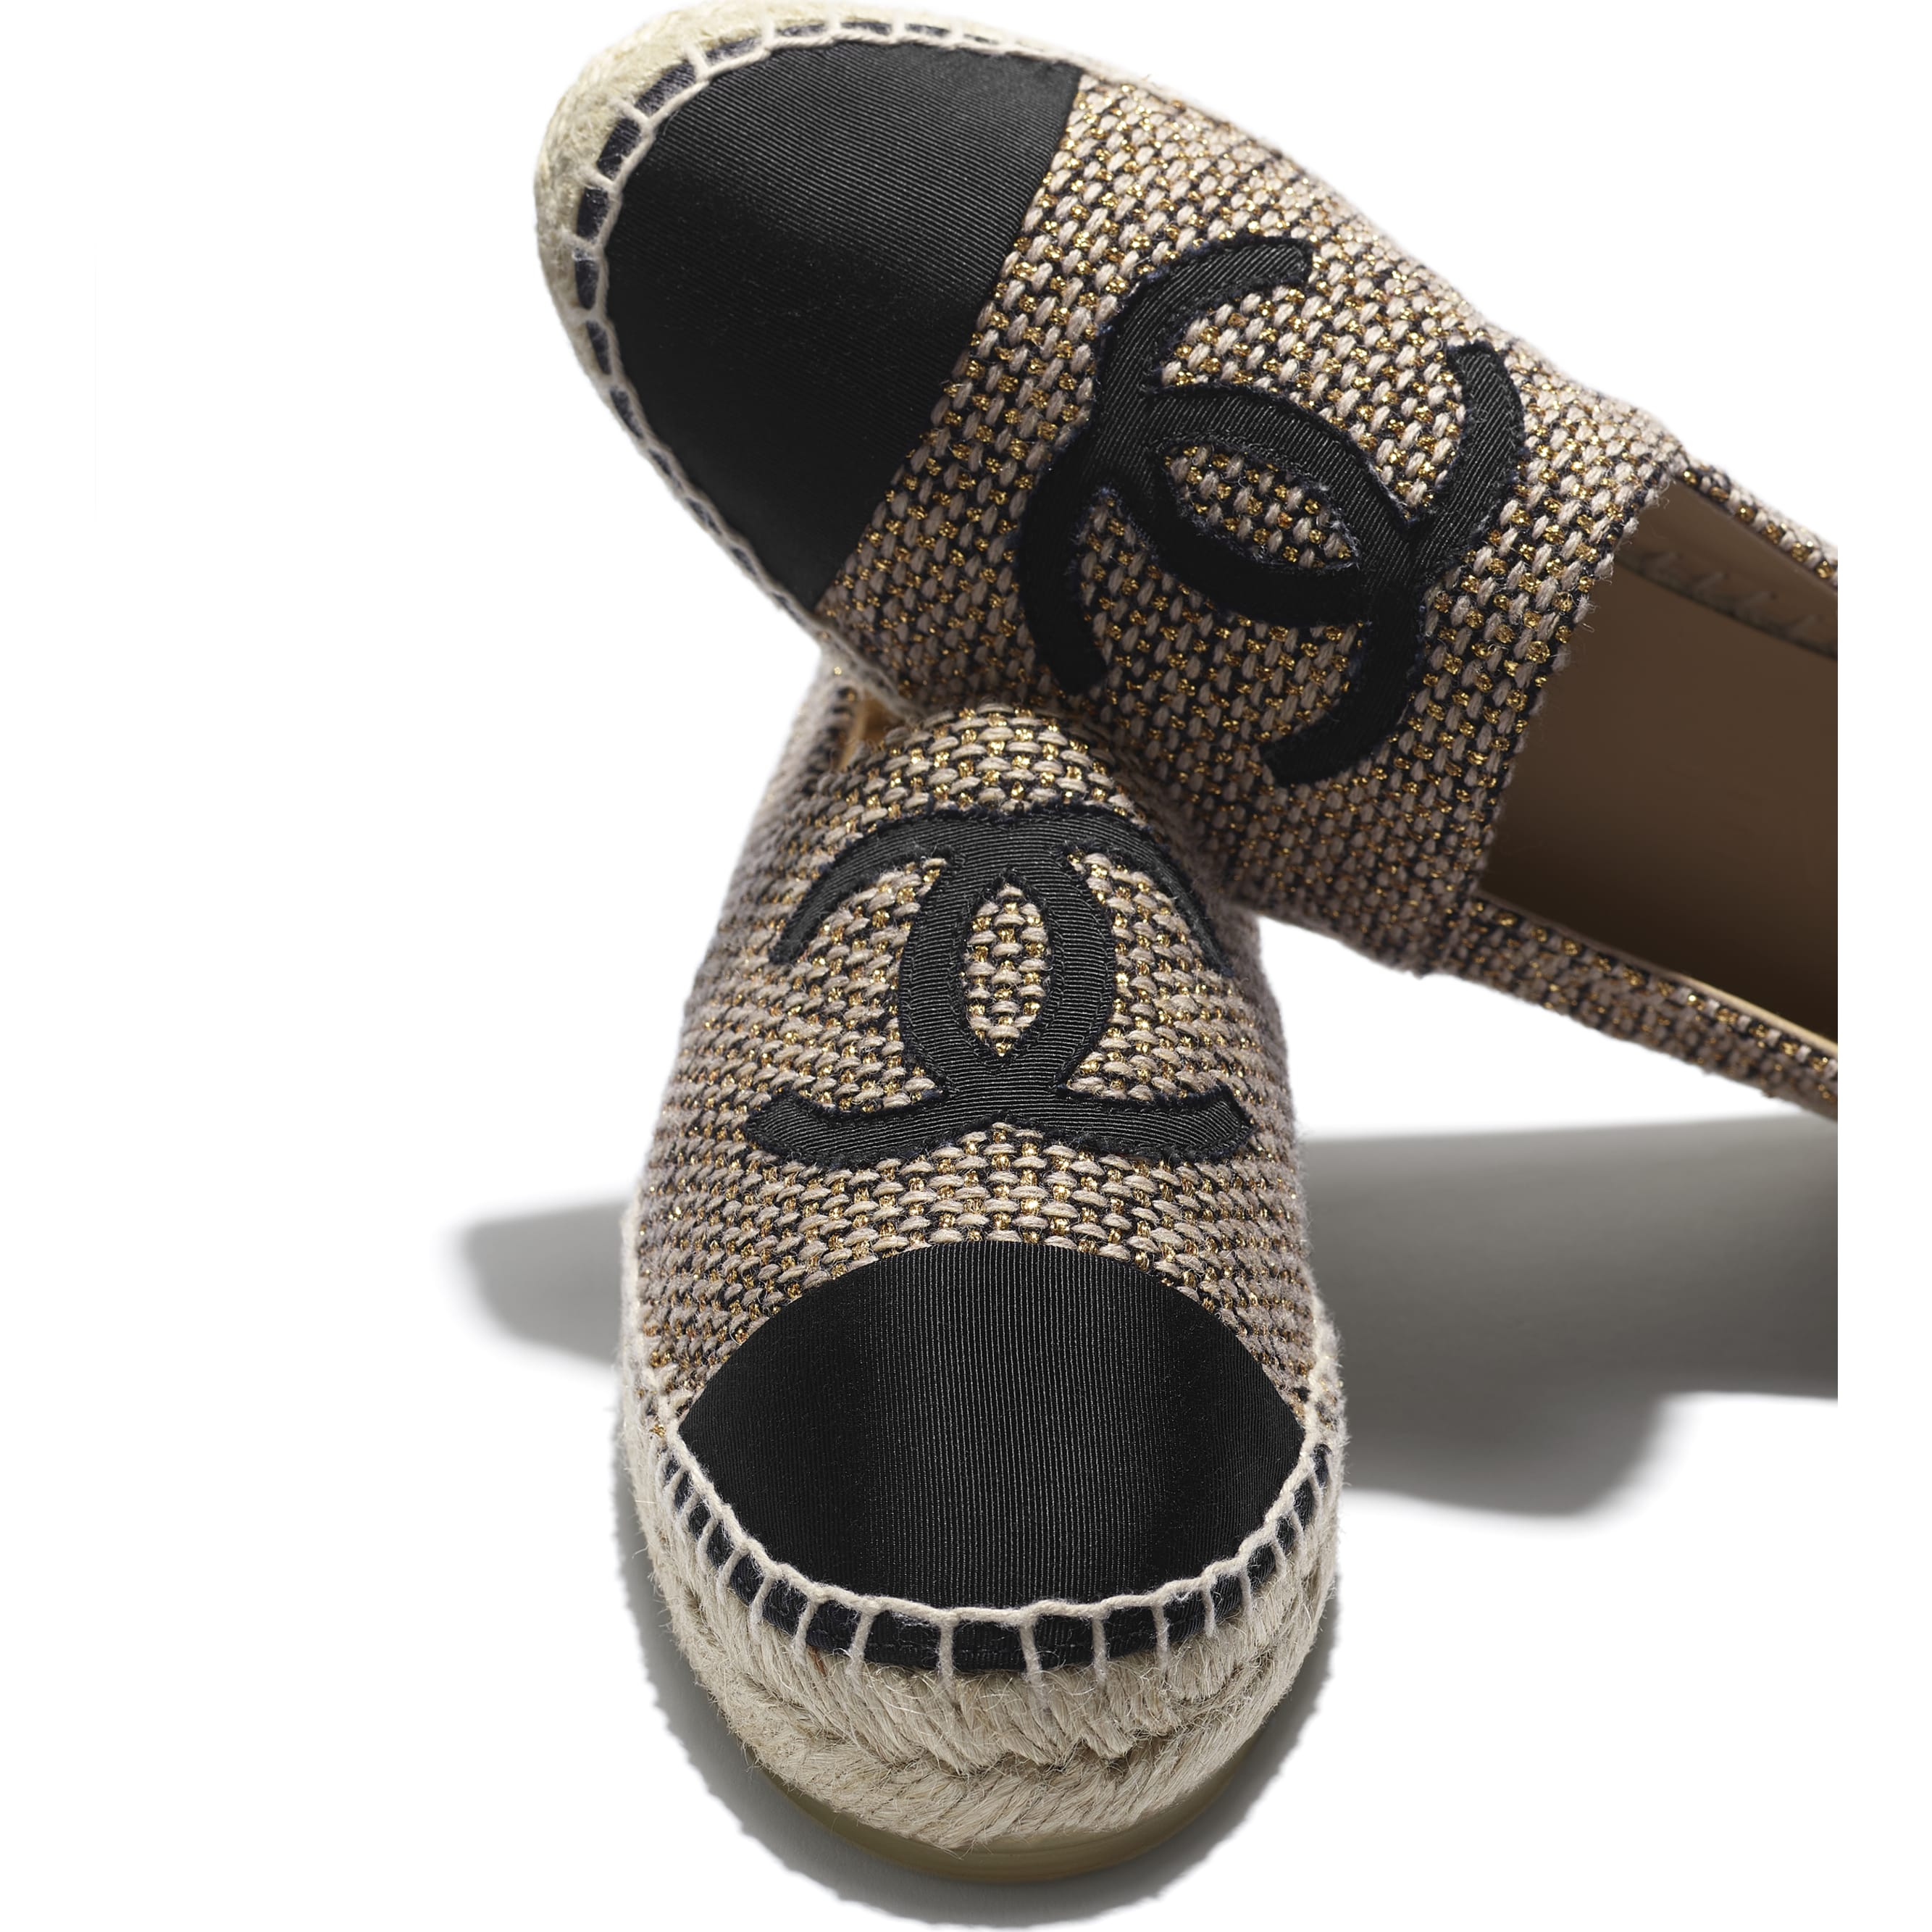 Espadrilles - Gold, Beige & Black - Tweed & Grosgrain - CHANEL - Extra view - see standard sized version